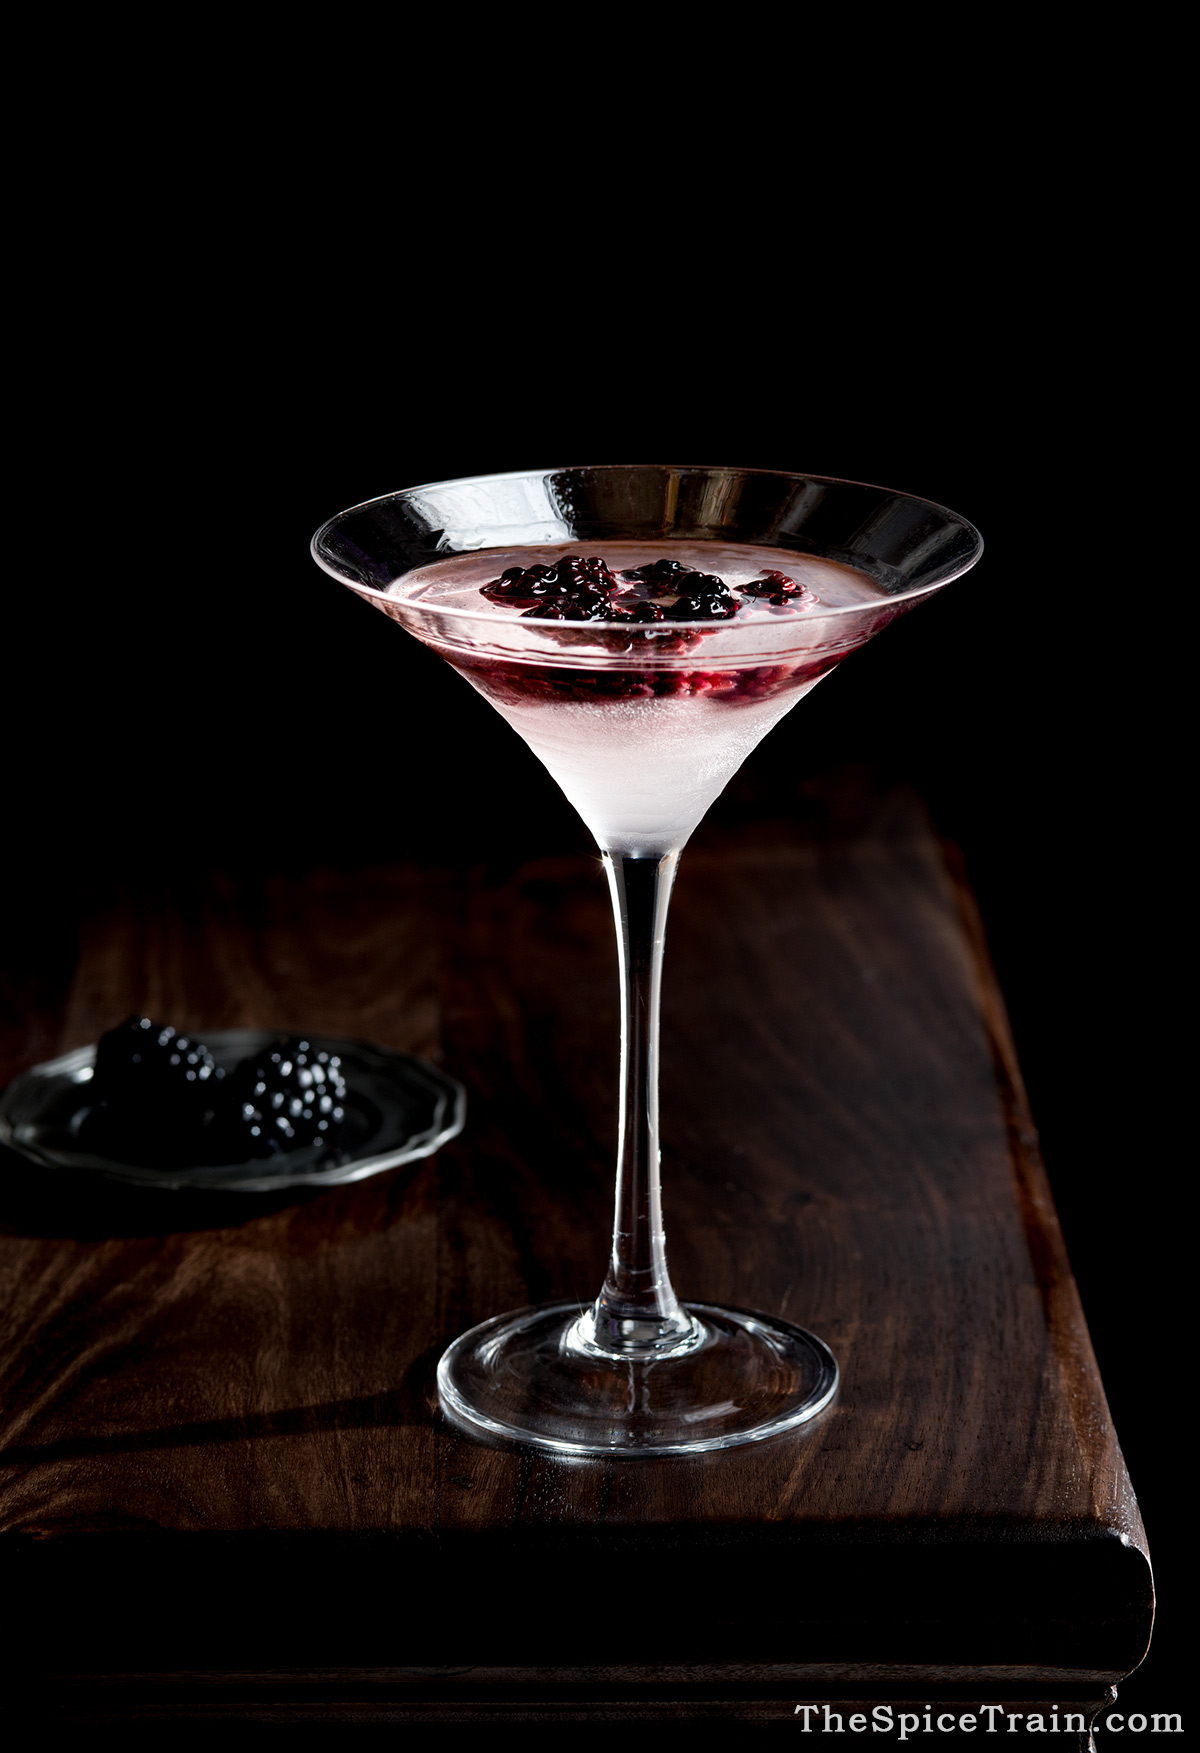 A tall, elegant glass filled with a bramble cocktail.